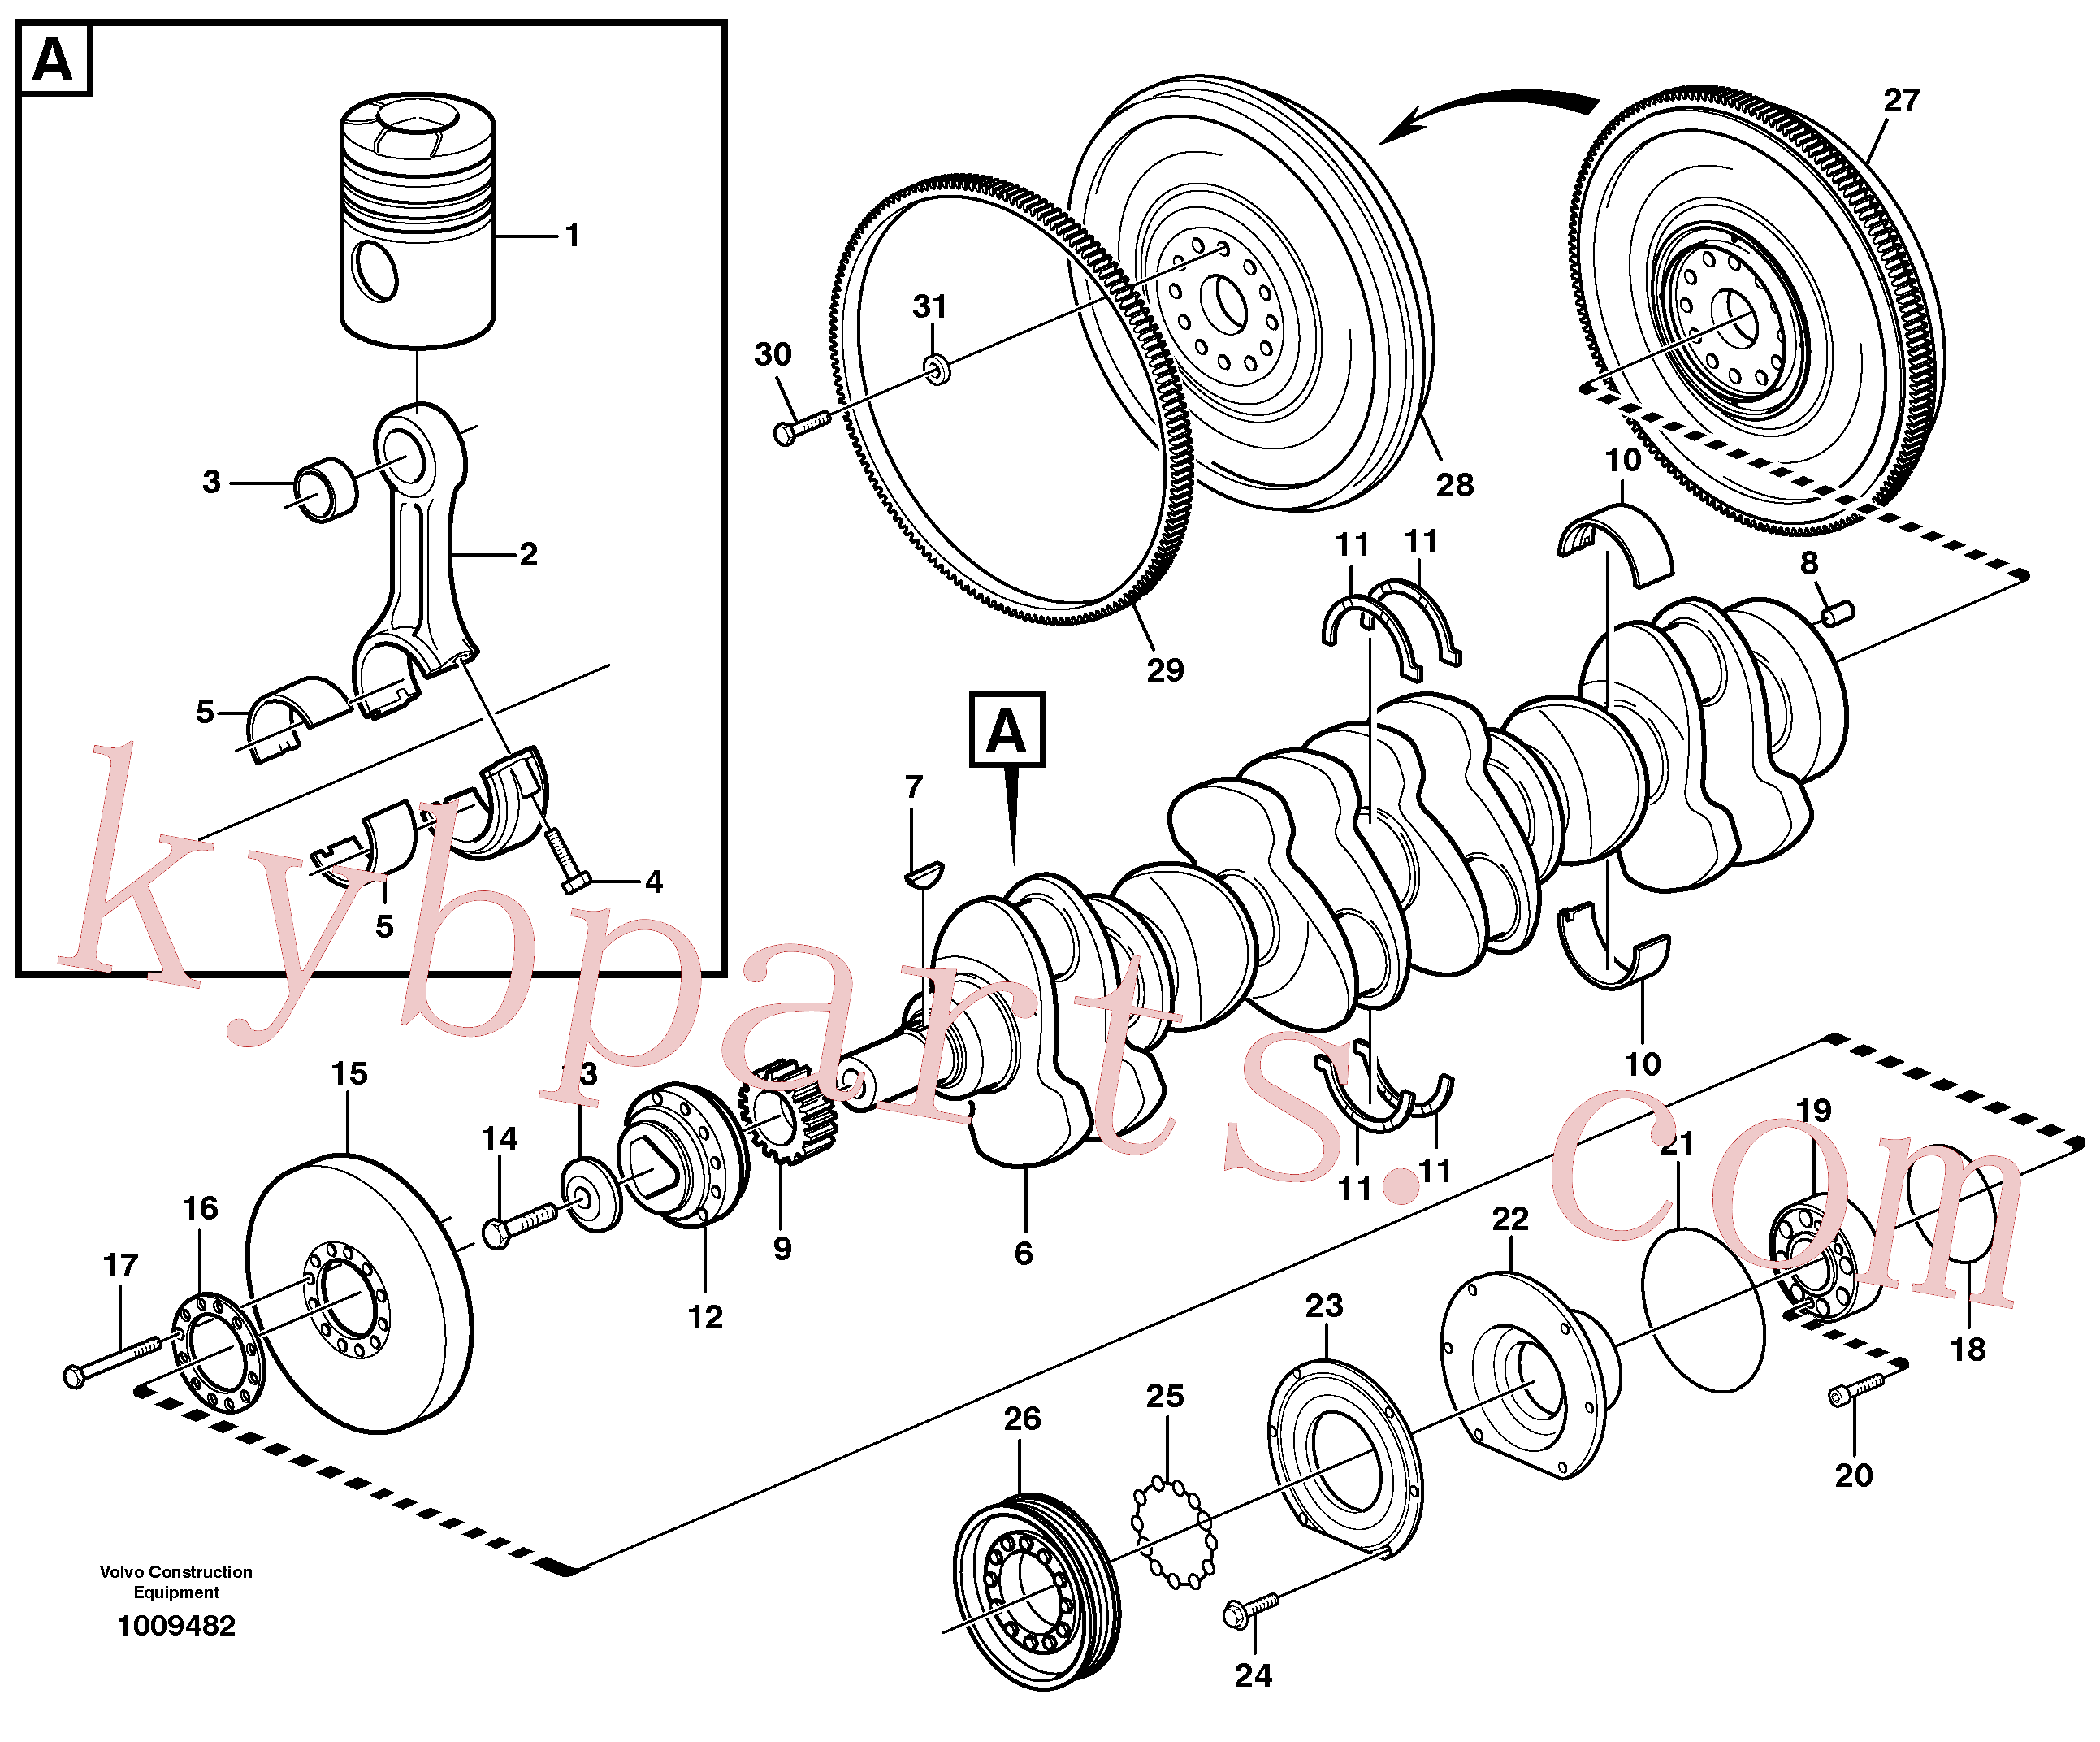 VOE945512 for Volvo Crankshaft and related parts(1009482 assembly)